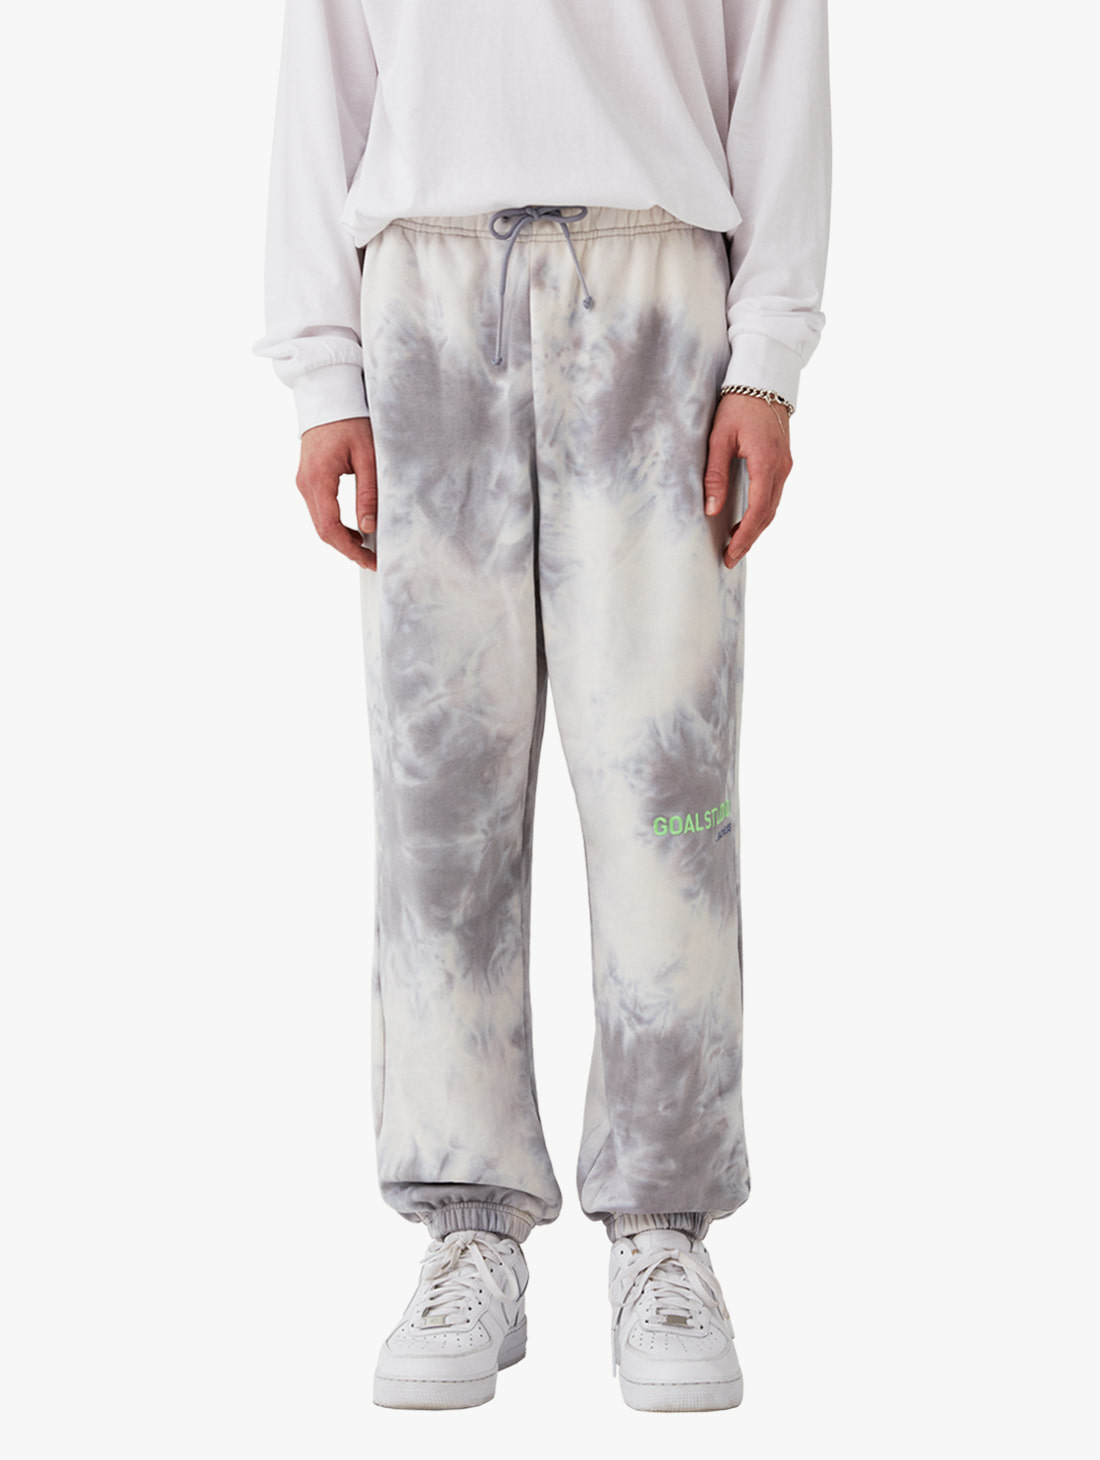 GOALSTUDIO TIE DYE JOGGER PANTS (2 Colors)